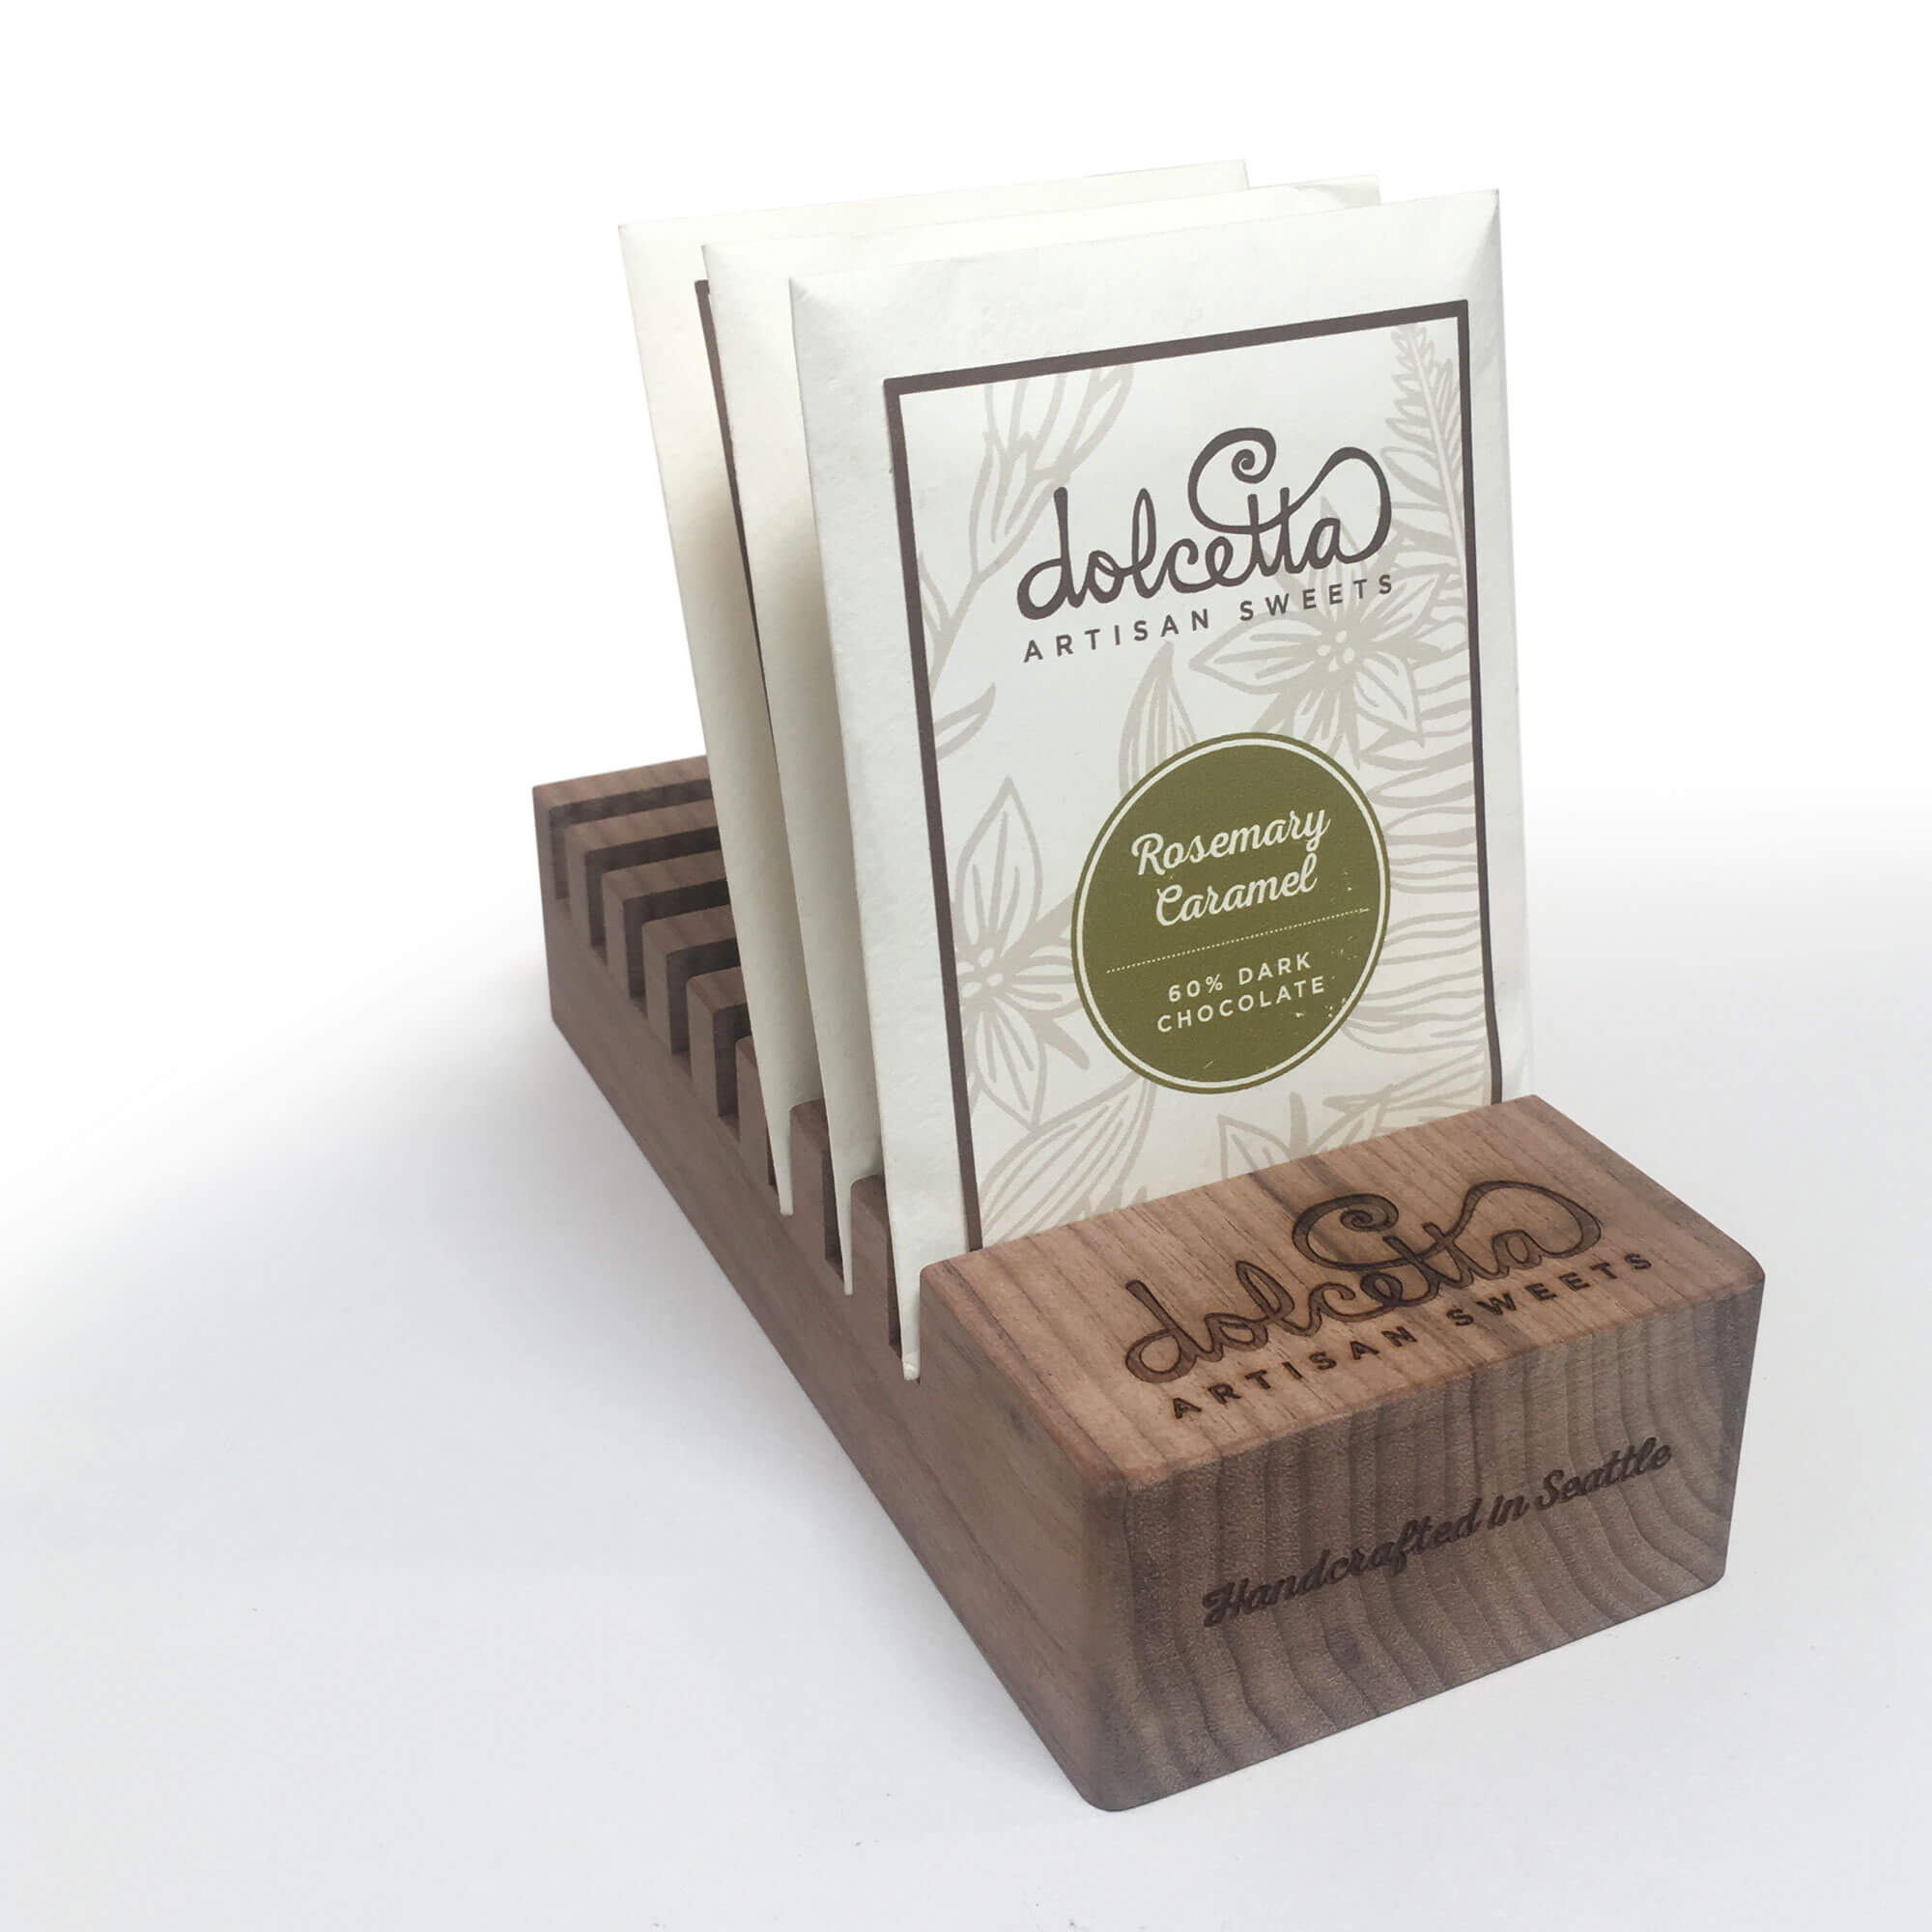 SML created custom Chocolate Bar display stands for Dolcetta Artisan Sweets of Seattle